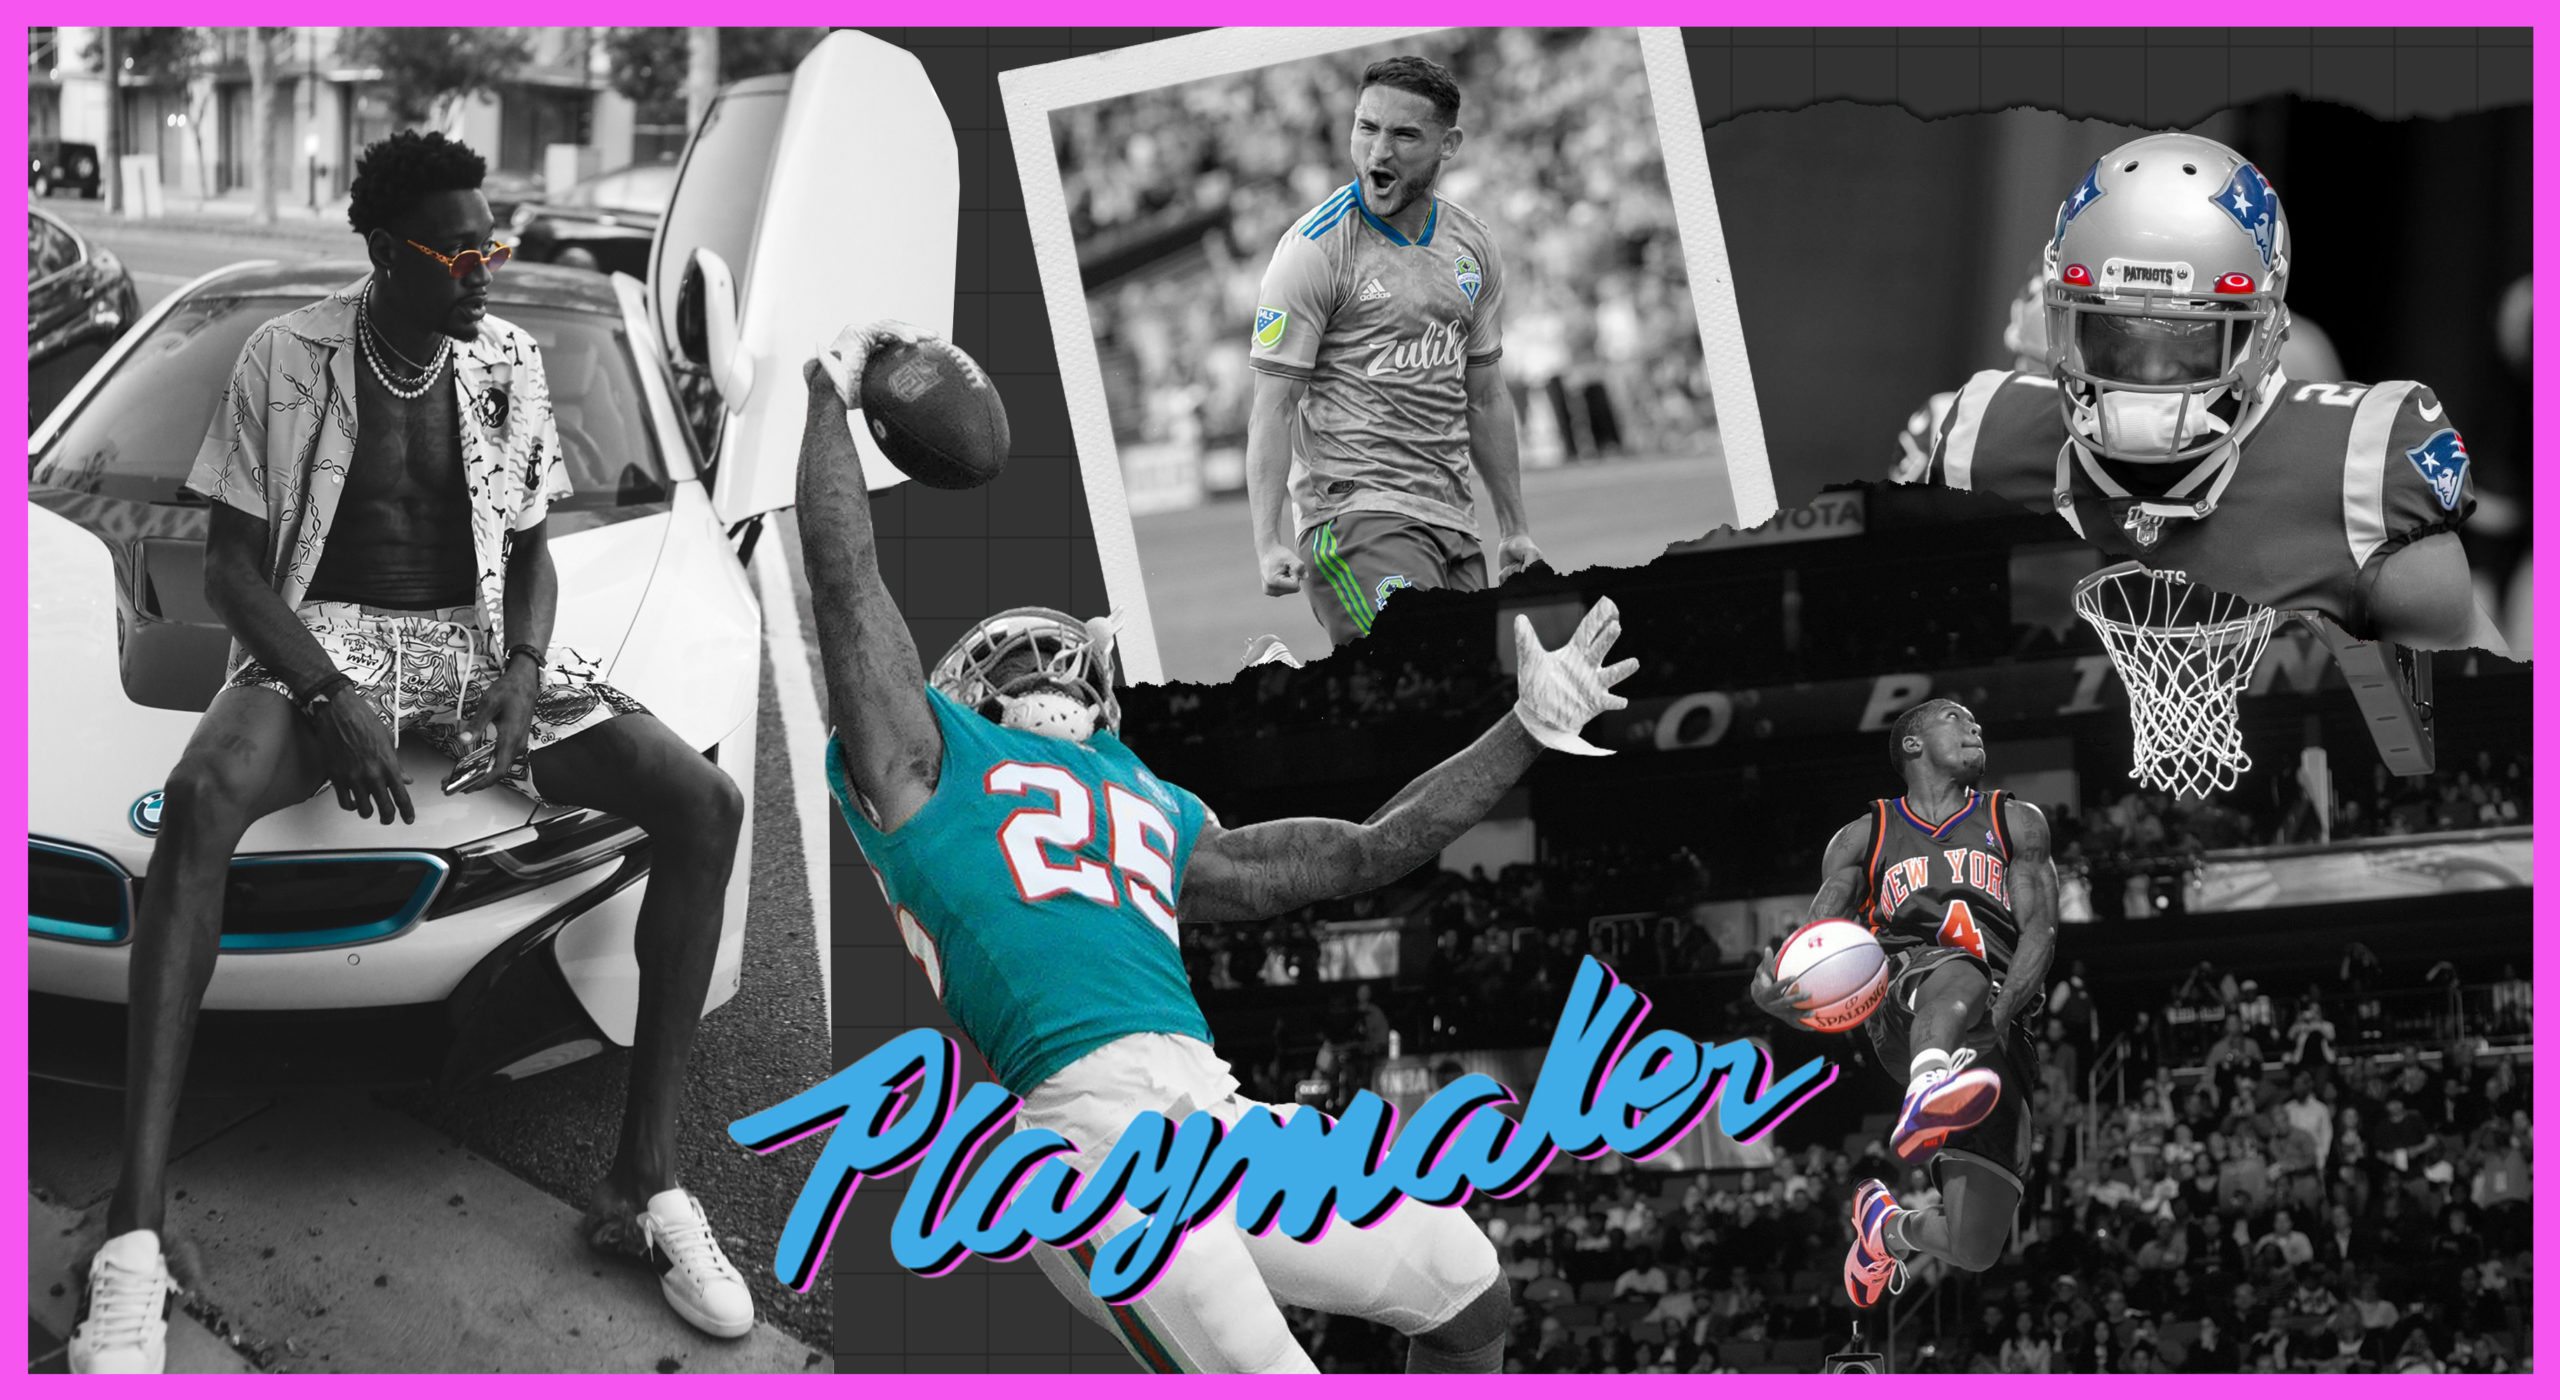 Playmaker's Web Content: All About the Comebacks And Come-Ups